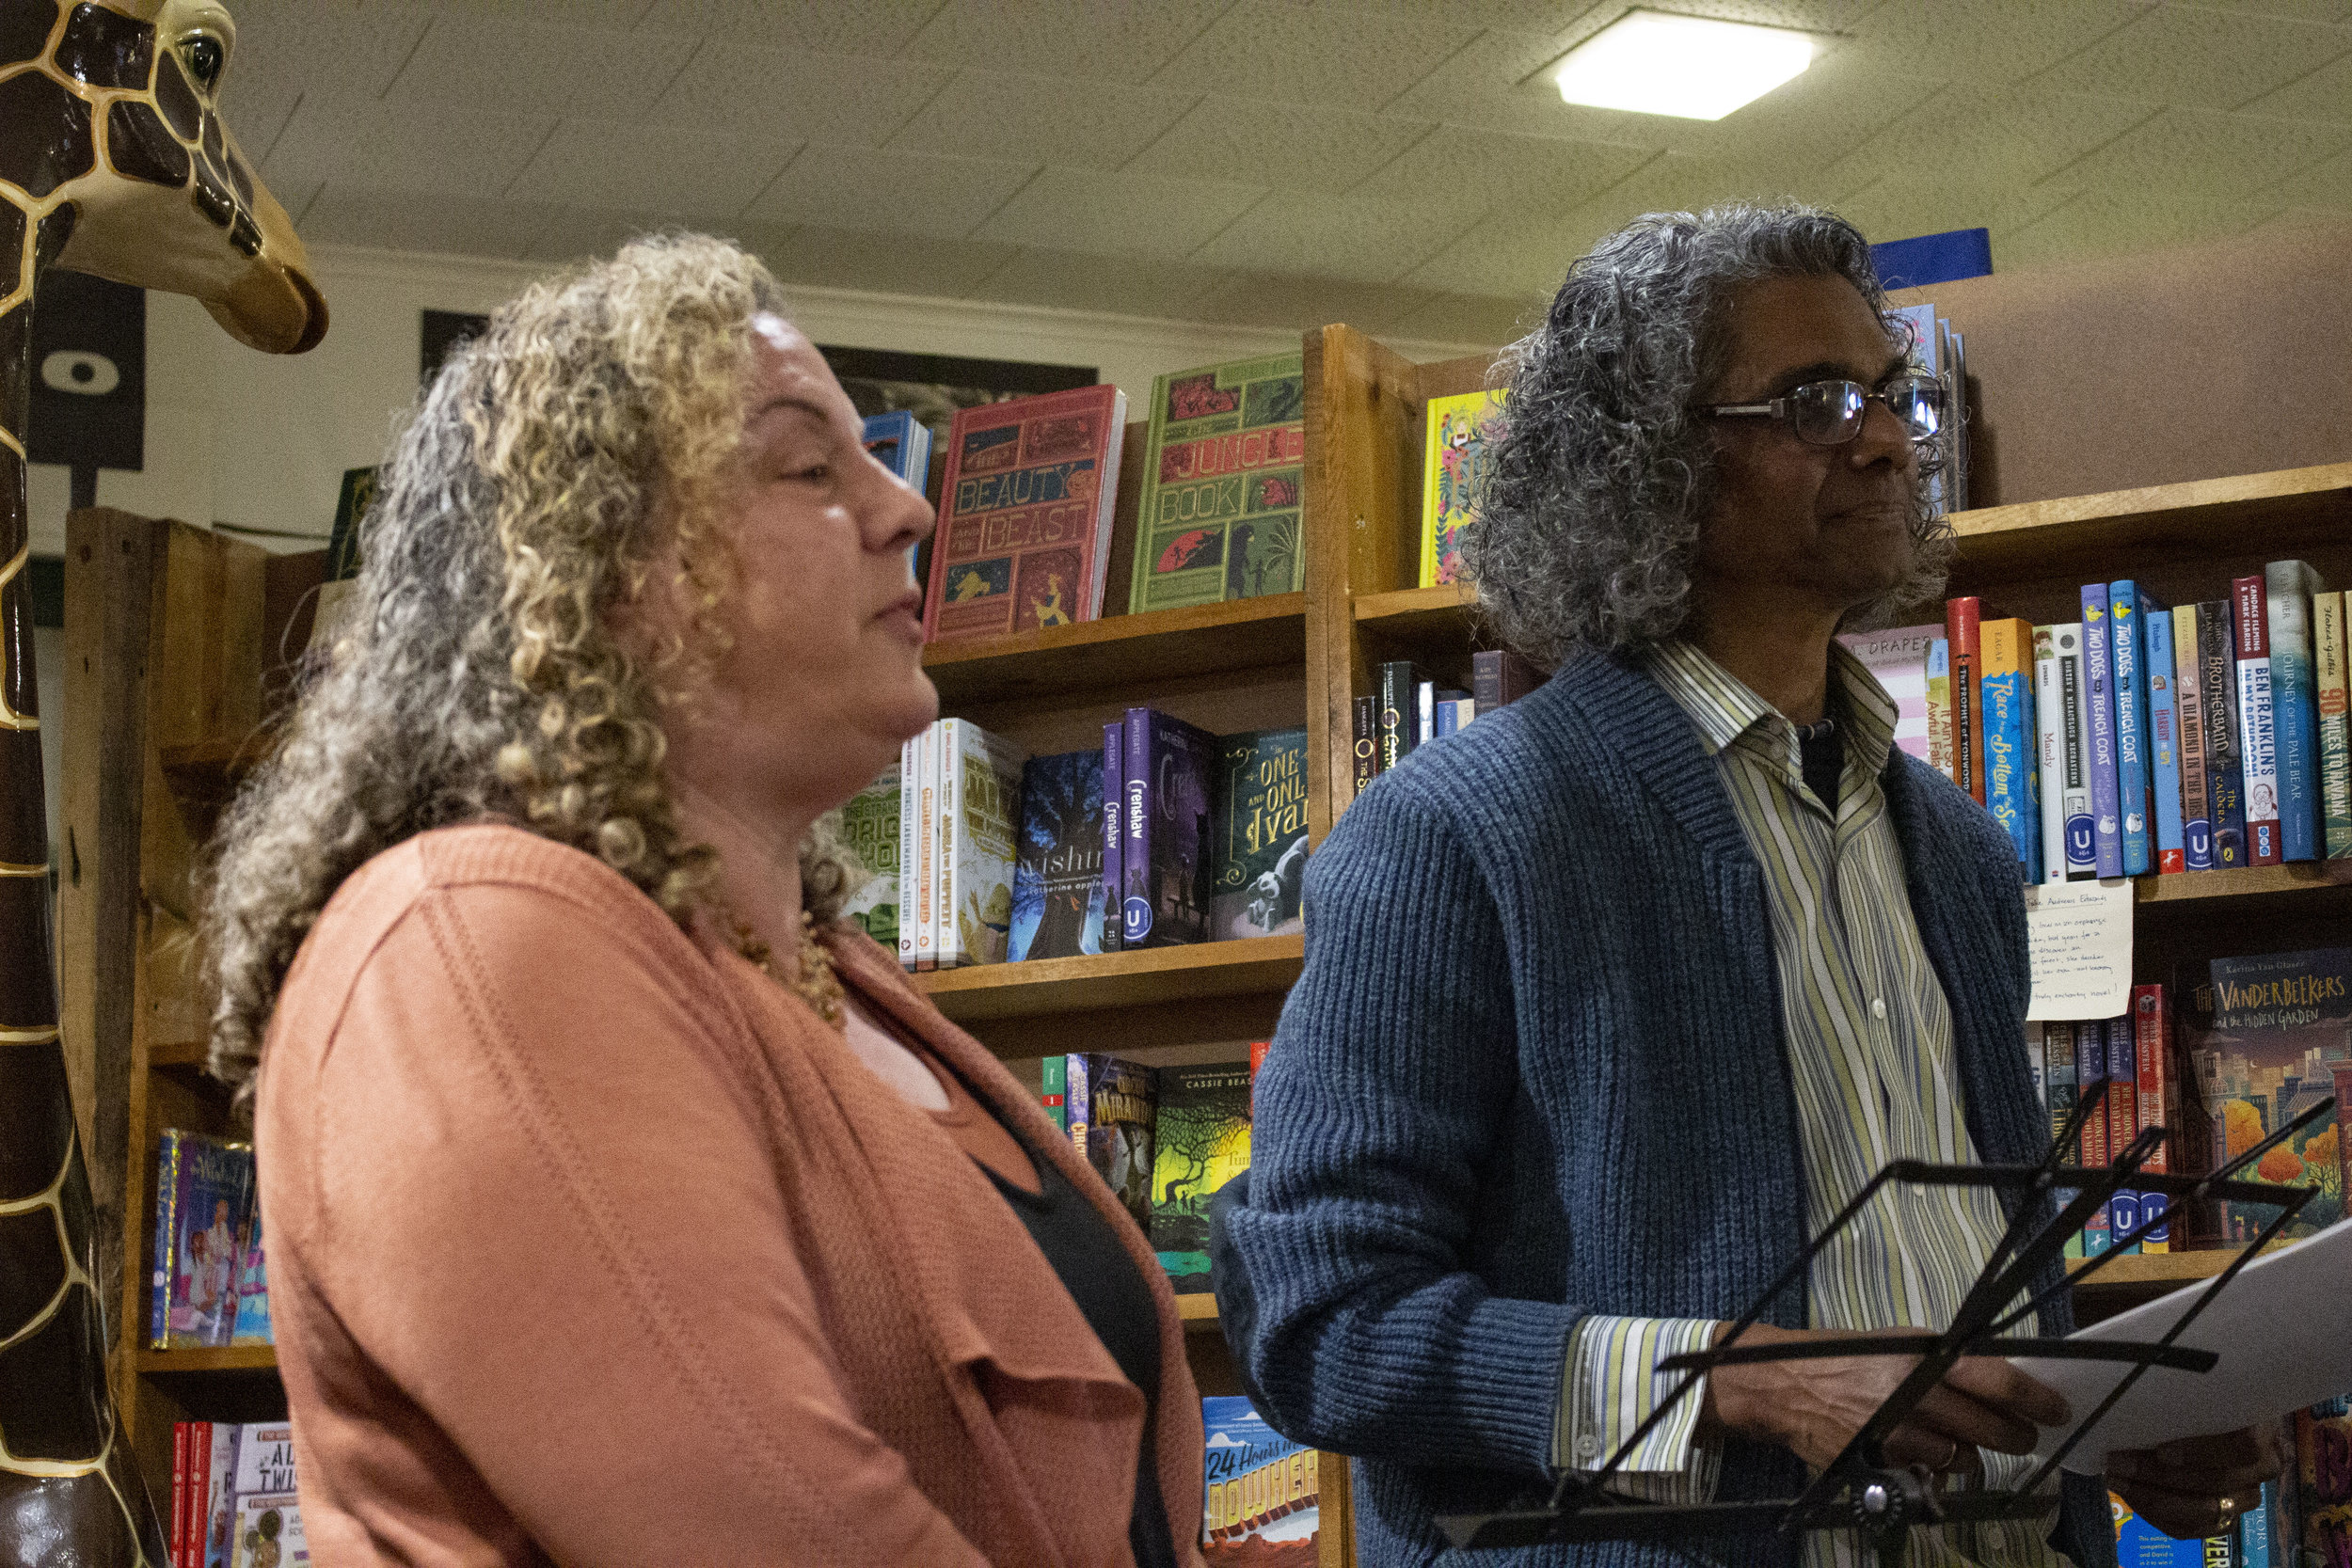 Celebrating Evanston Voices organizers Dina Elenbogen and Ignatius Valentine Aloysius introduce the reading at Bookends & Beginnings.